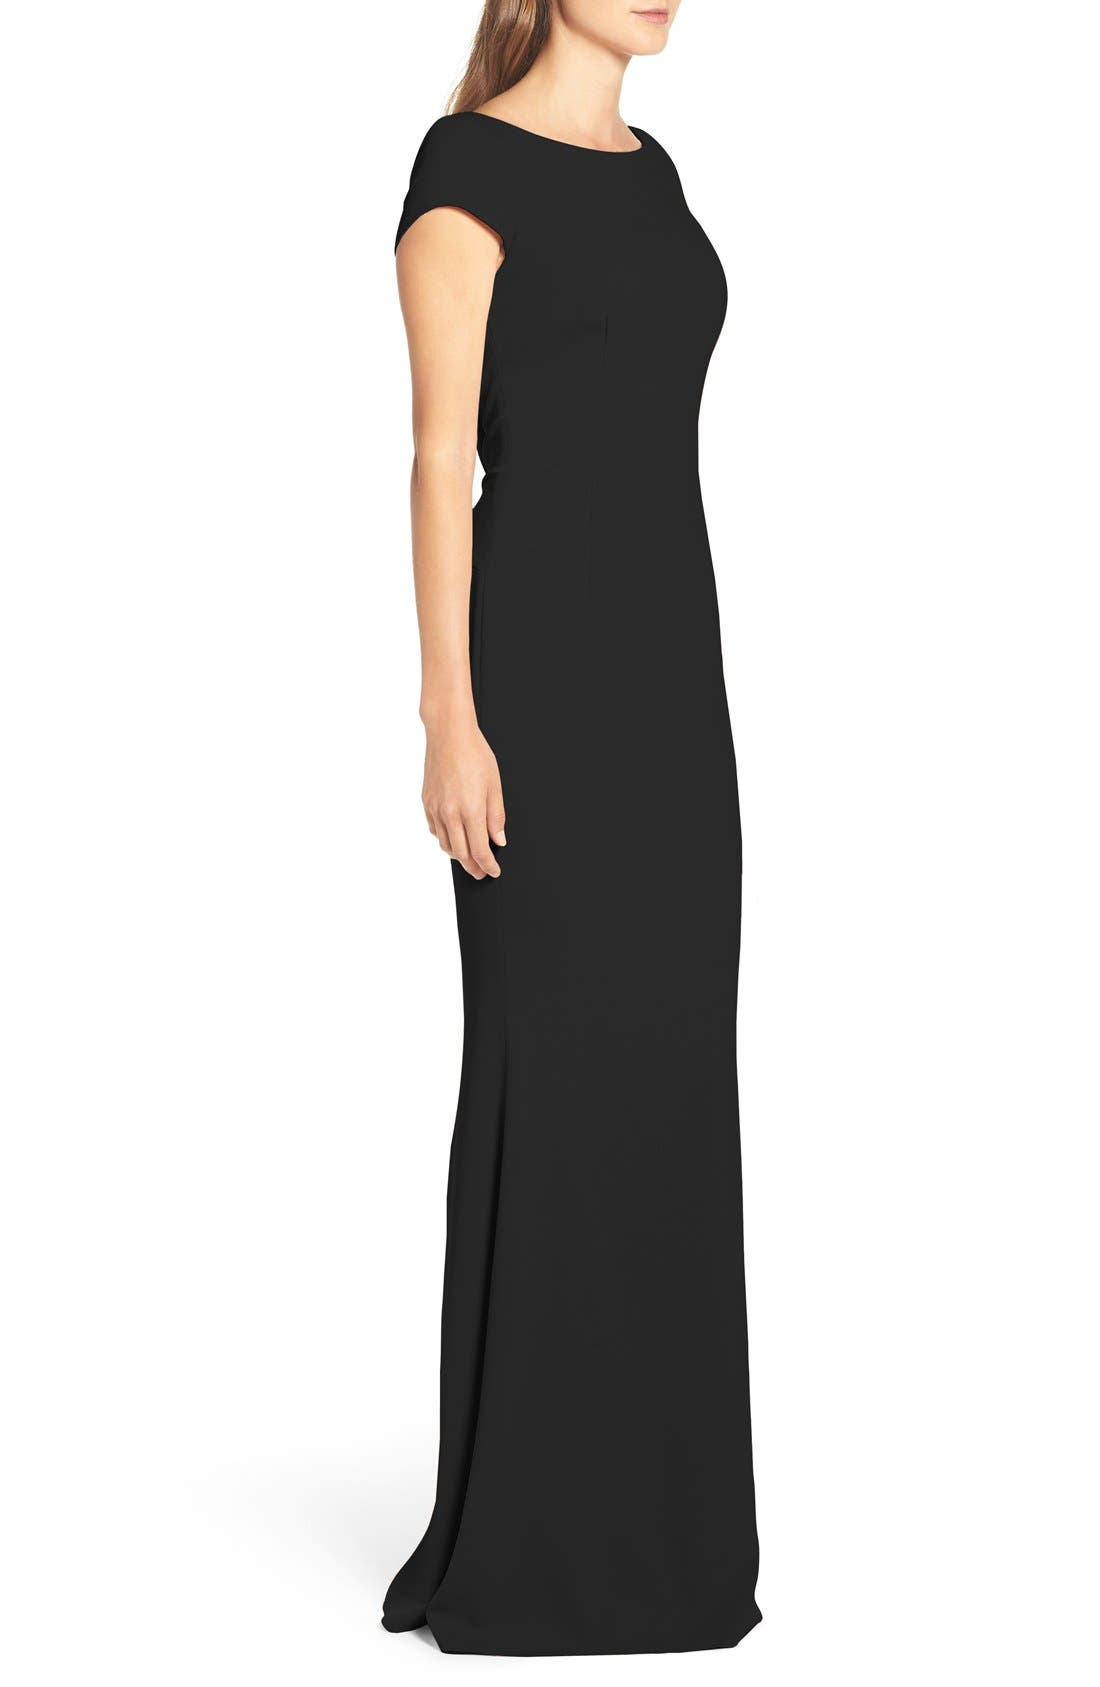 Intrigue Plunge Knot Back Gown,                             Alternate thumbnail 9, color,                             BLACK